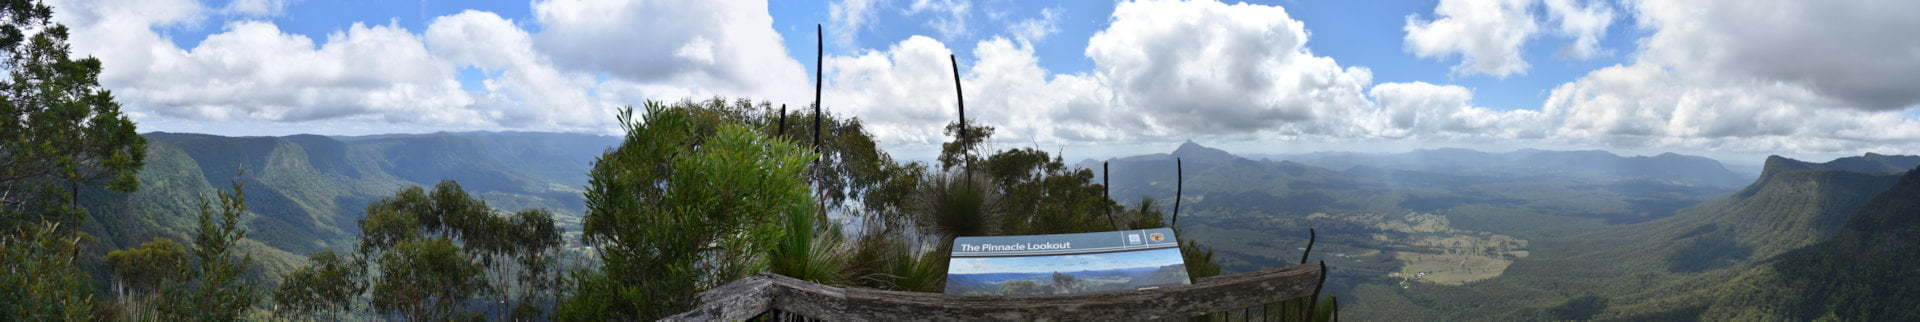 Panorama view from The Pinnacle at the Border Ranges National Park